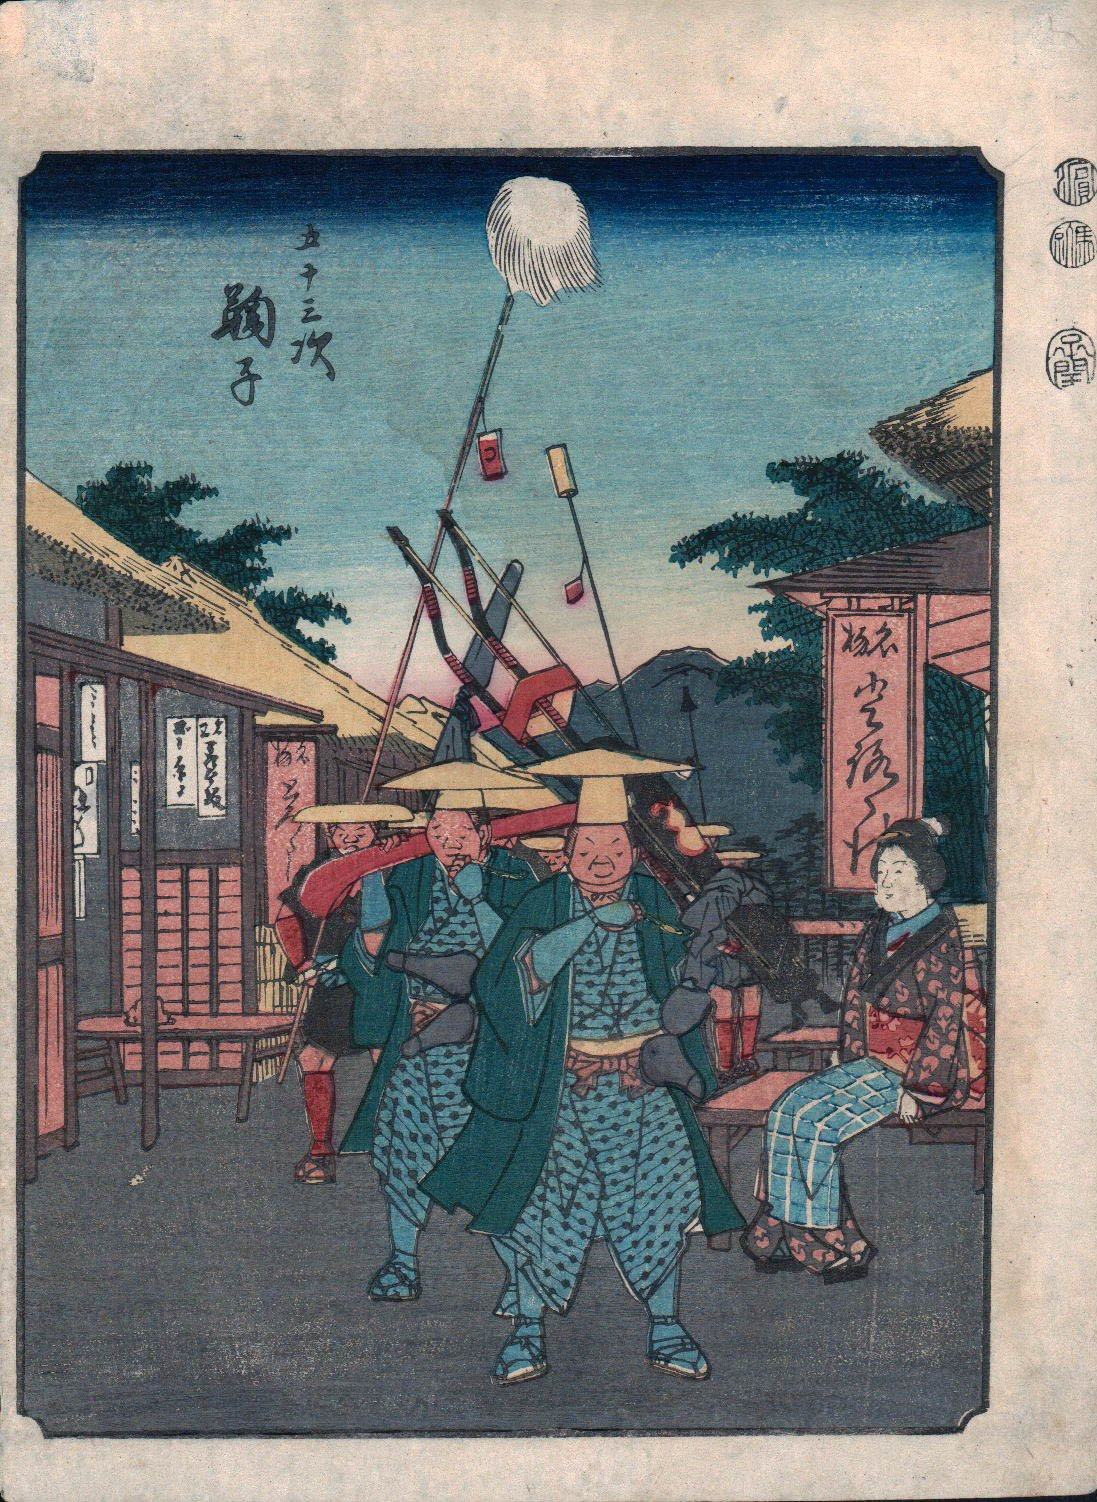 Vintage Japanese Wood Block Print Archers Street Scene 7x10in